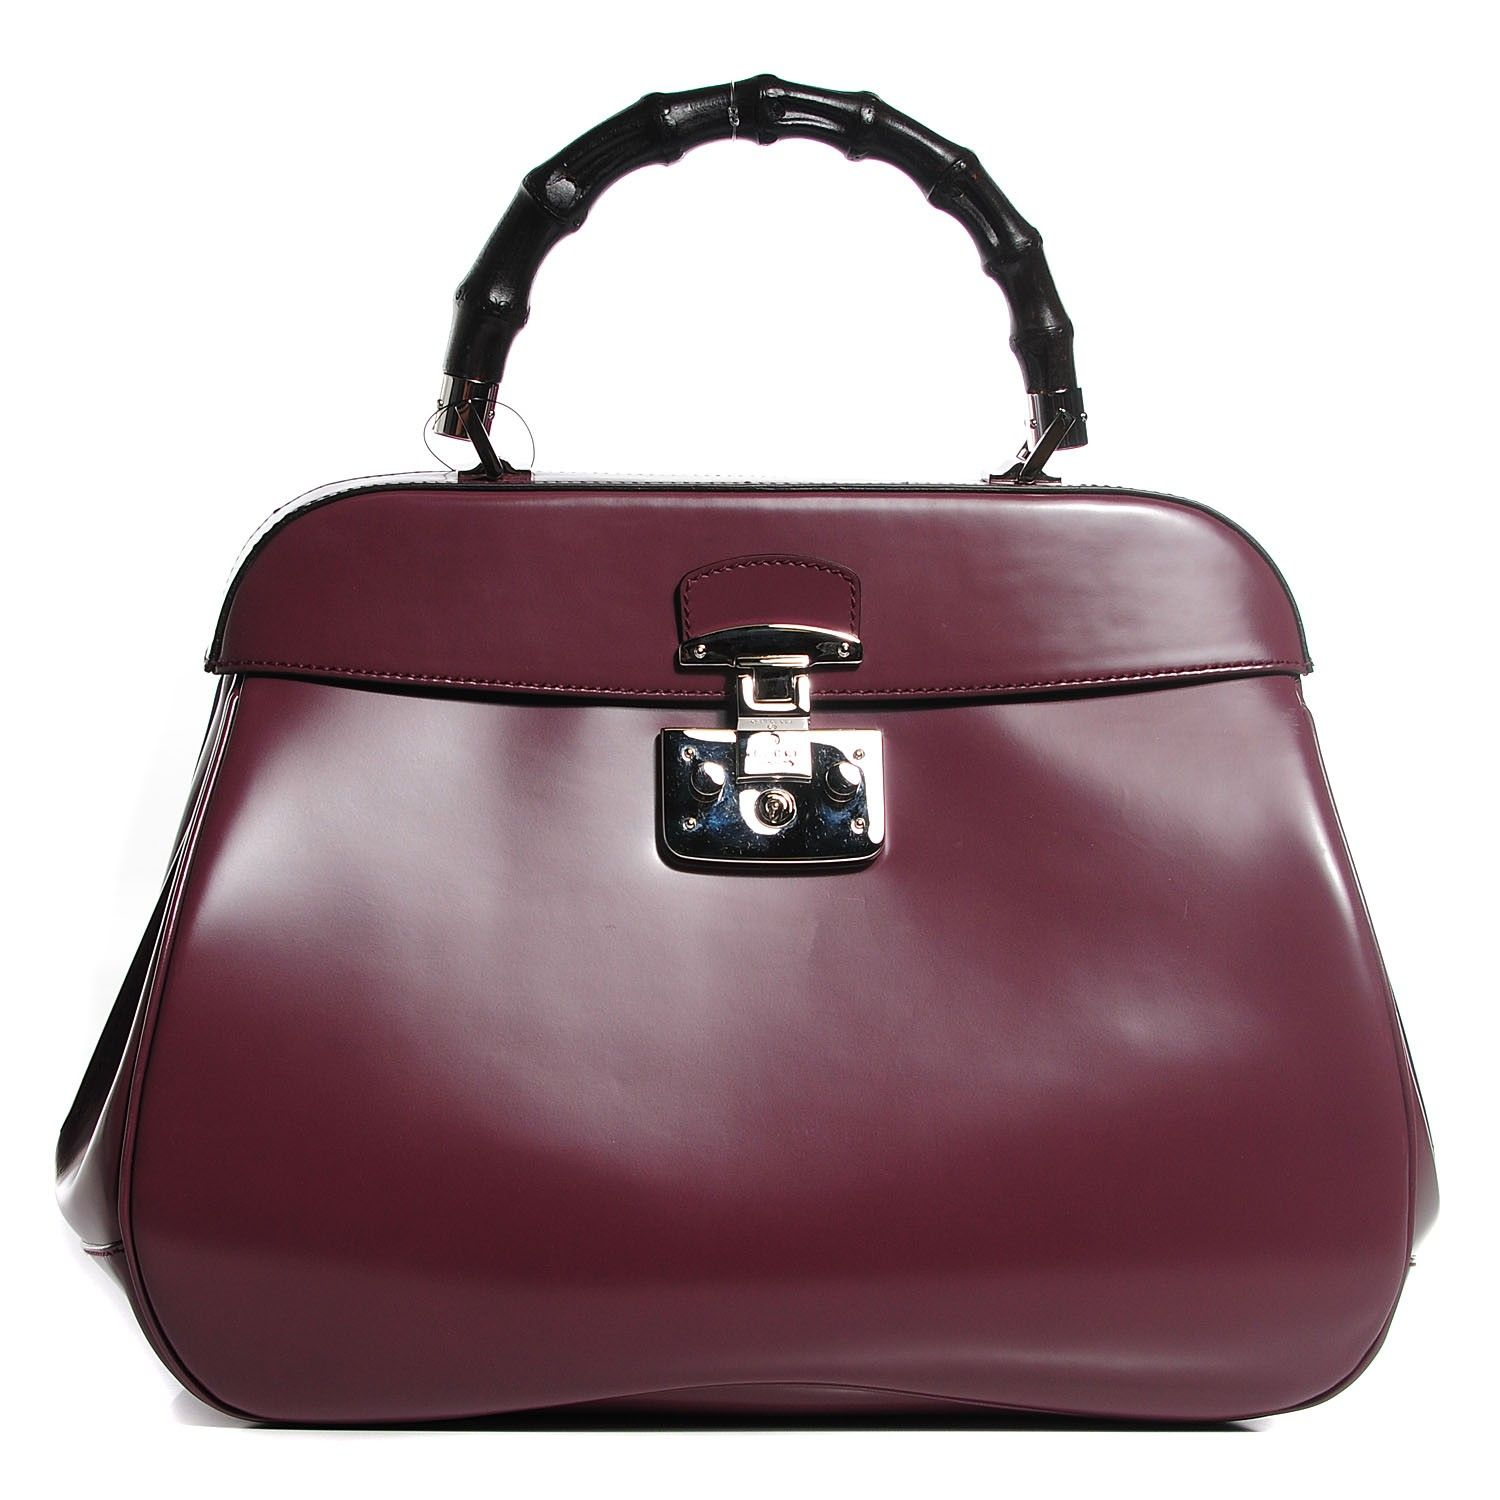 15eaab06b2cd GUCCI Leather Bamboo Large Lady Lock Top Handle Bag Red Orchid ...